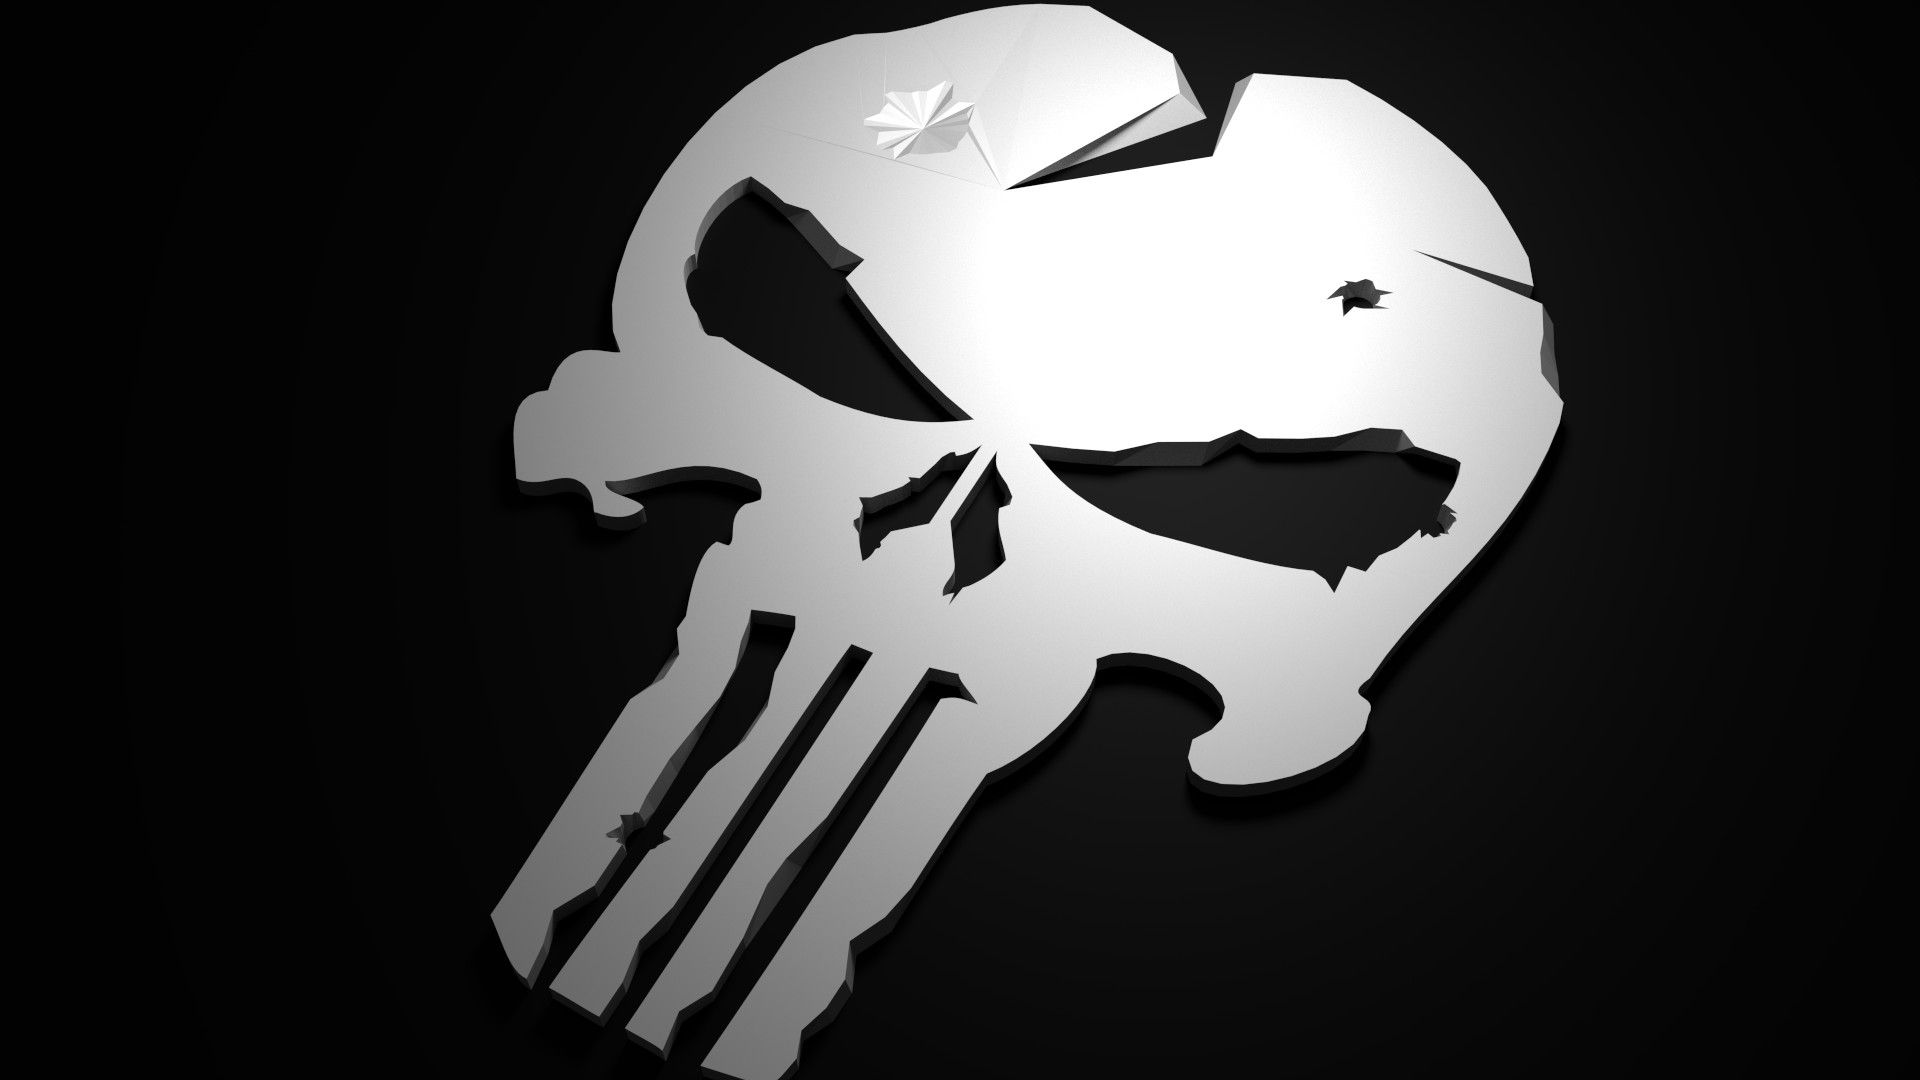 Chris Kyle Punisher Logo Wallpaper 73+ Images (With Images